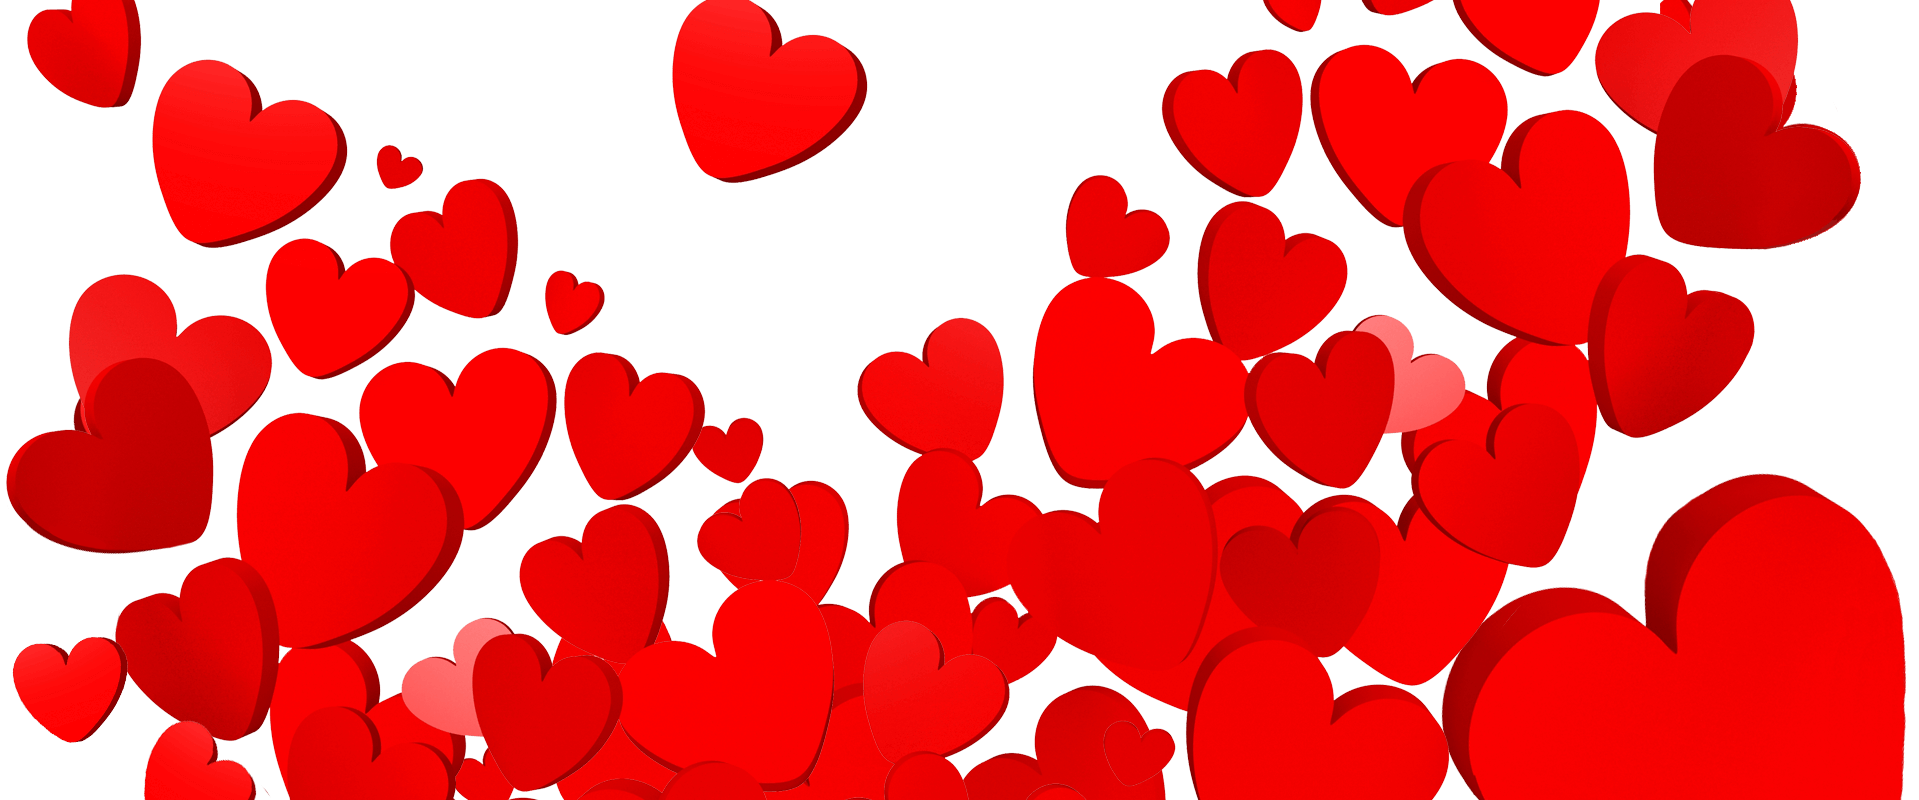 Valentines hearts png. Day heart free download